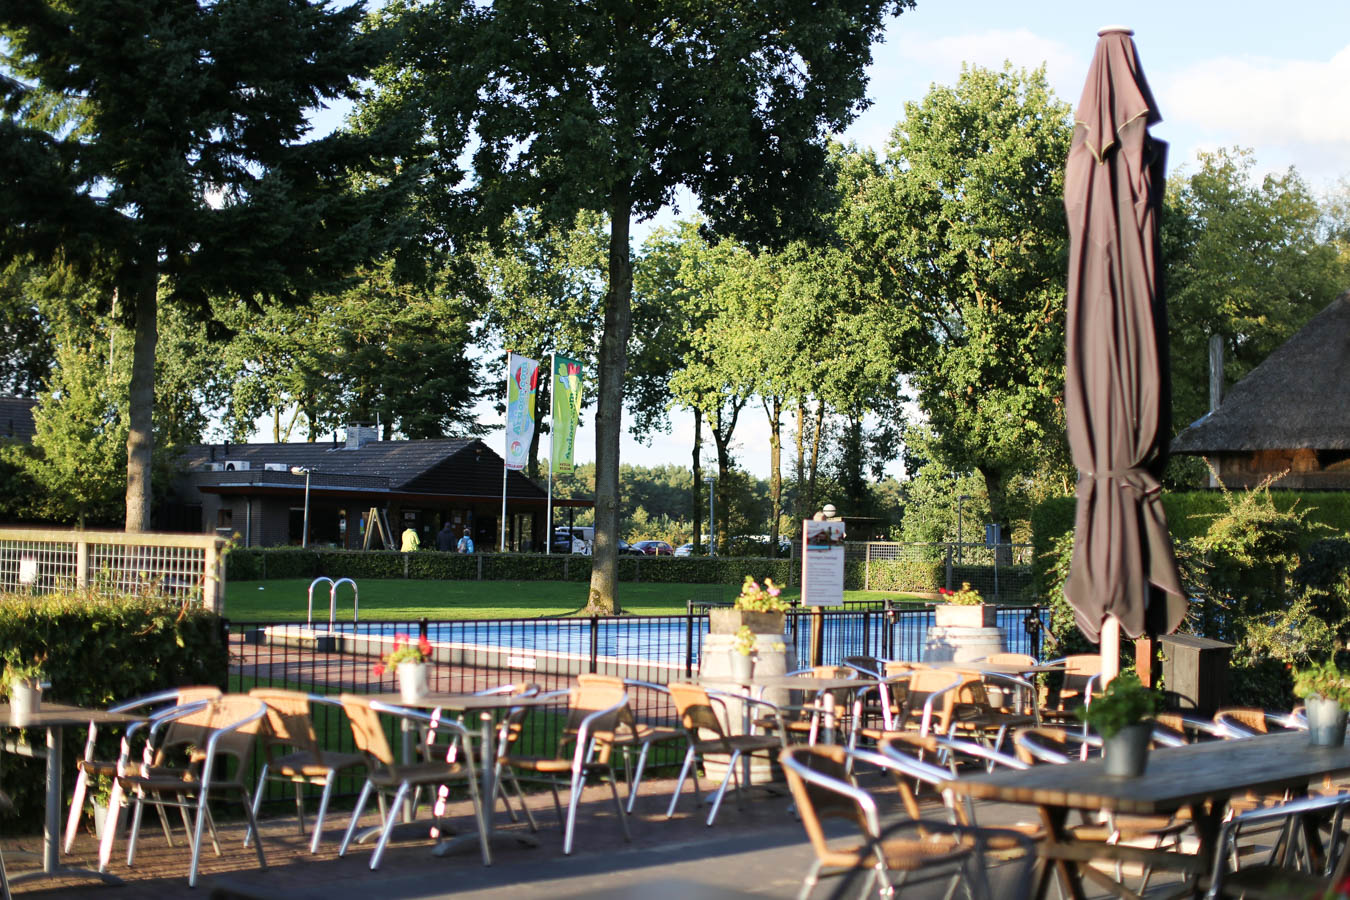 Camping de Wije WereltSchwimmbad - Das andere Holland